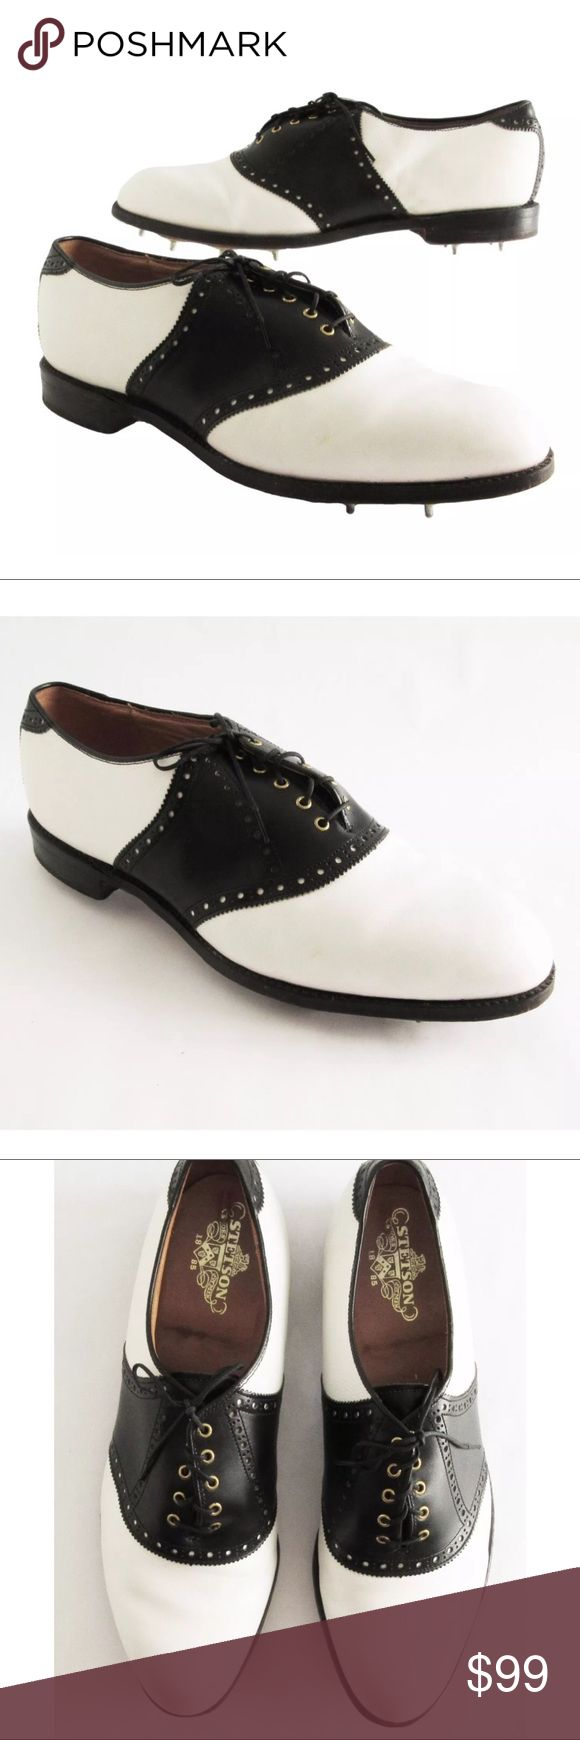 Stetson Vintage Oxford Golf Shoes Metal Spikes Stetson Golf Shoes Pre-Owned, excellent condition Pebbled Leather Body with Smooth Leather Saddle Oxford Details Size: 13 D/B Color: Black and White Leather Pre-Owned **These are vintage shoes with metal spikes No Trades Stetson Shoes Athletic Shoes